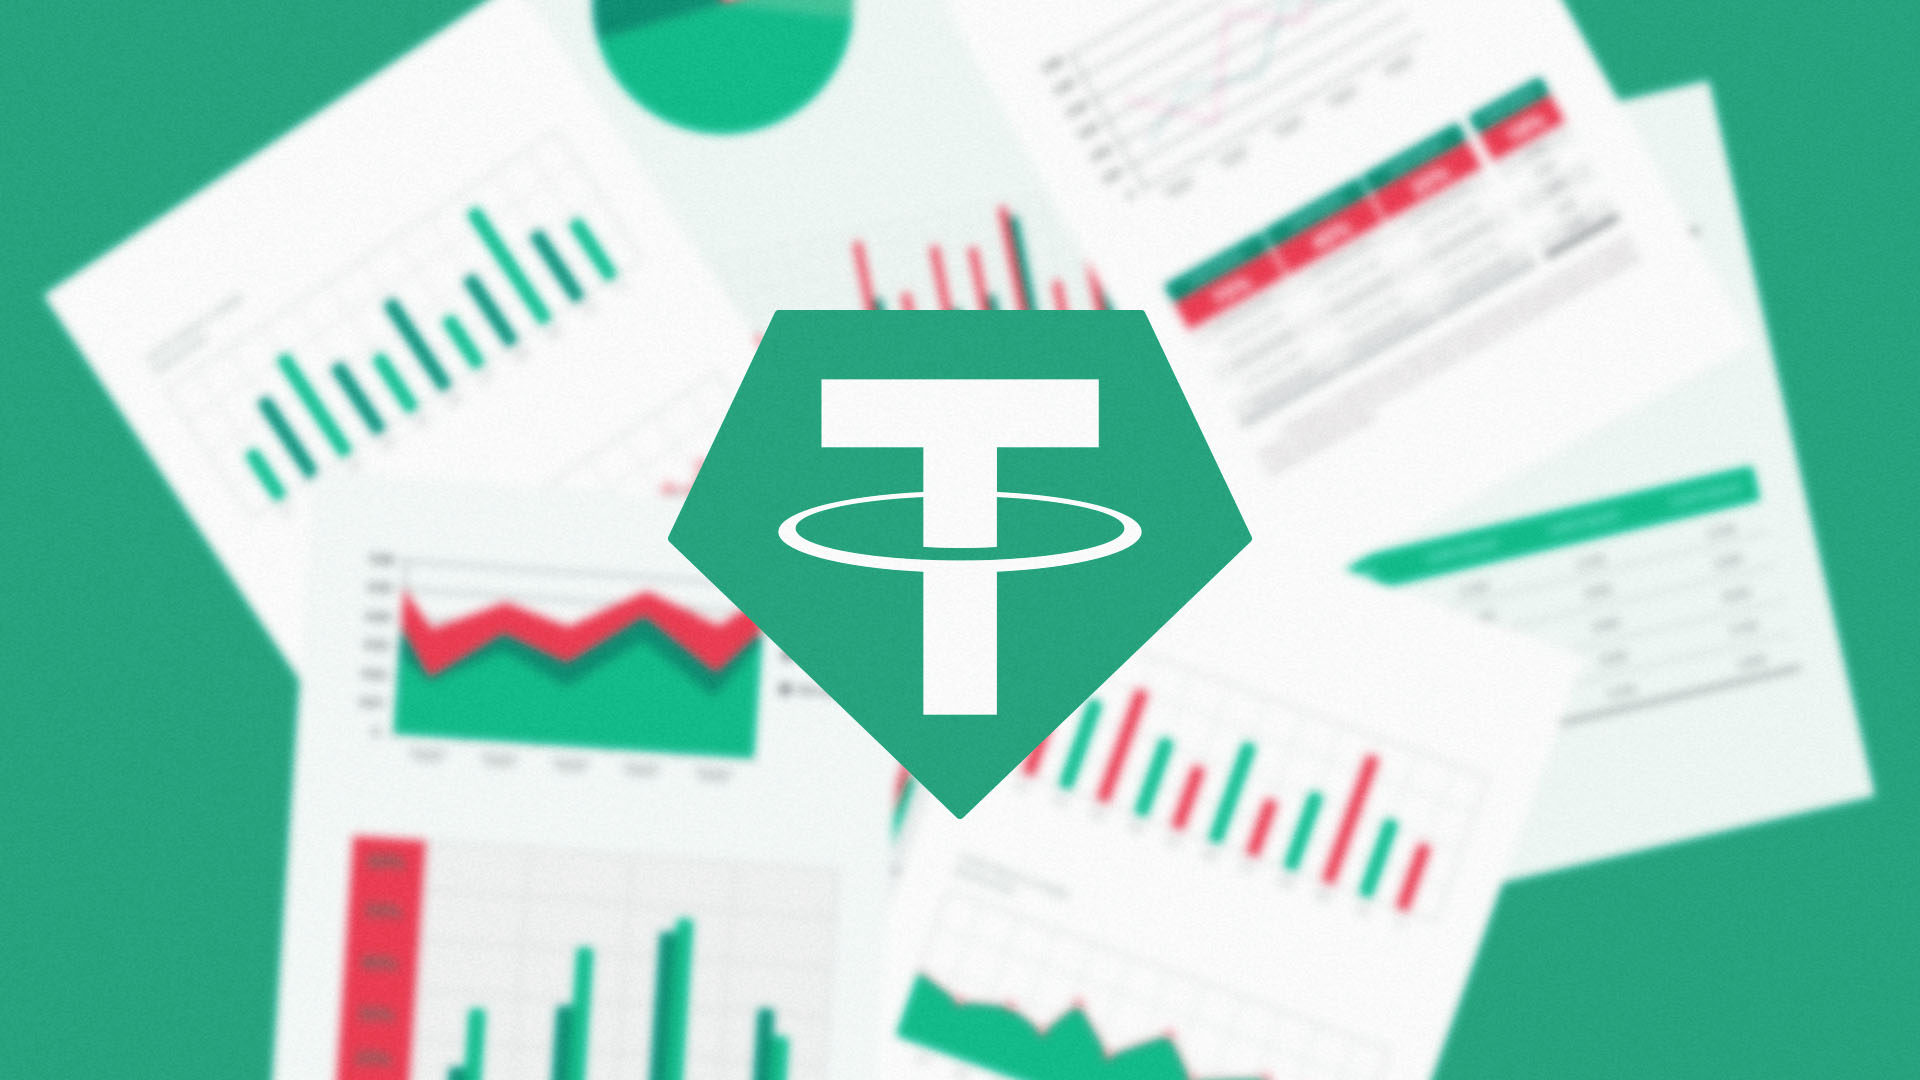 There's loads of papers full of charts representing the documents Tether needs to submit to the NYAG as part of its settlement.